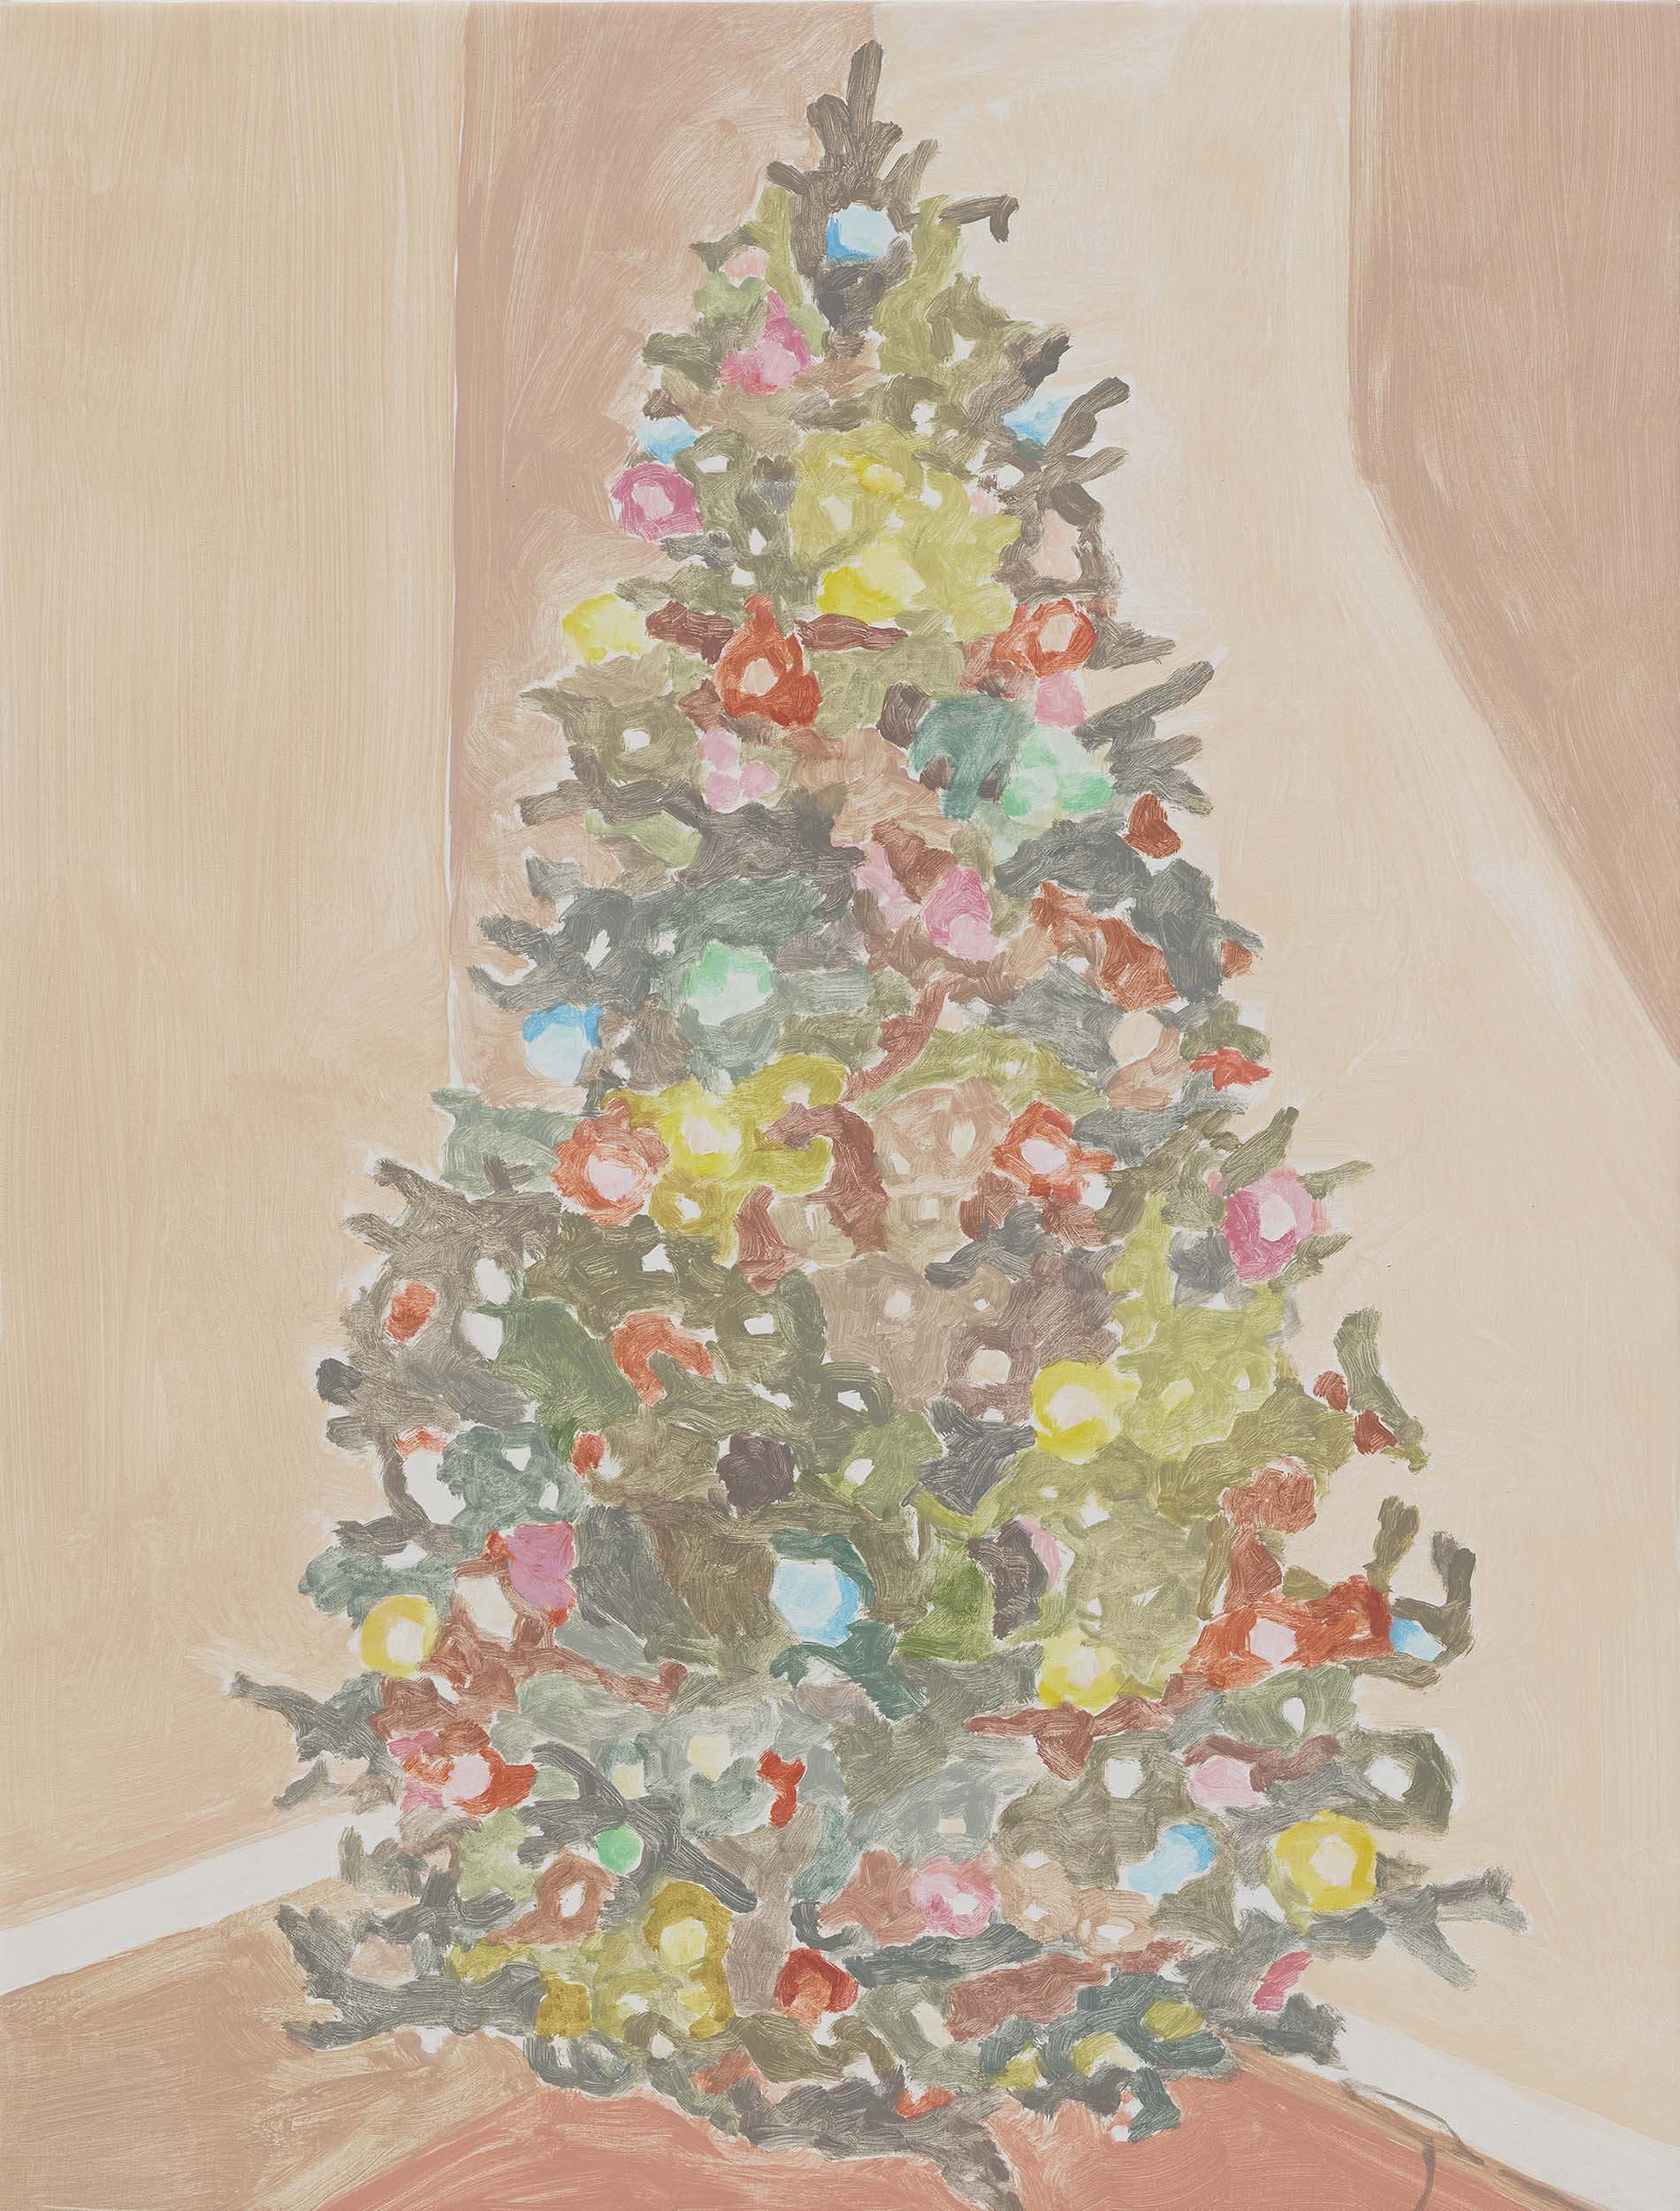 Xmas Tree (colored lights), acrylic on canvas, 32 x 24.25 inches, 2015.